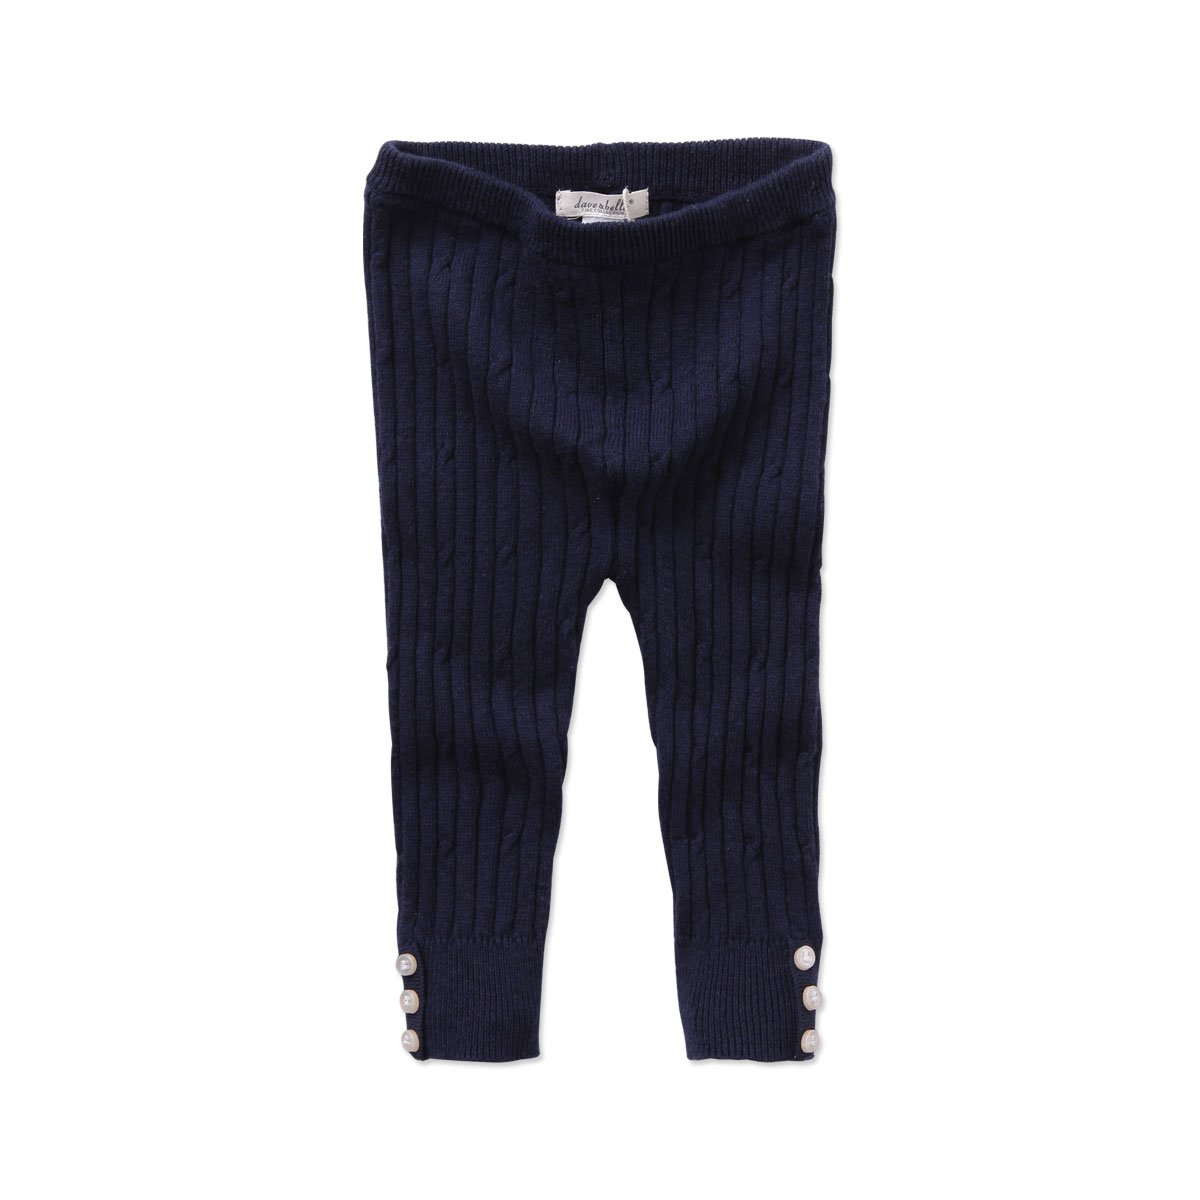 Kids N Color Baby Navy Knit Pants with Cable Design db4916 dave bella spring fall baby girls navy striped sweater boys navy star embroidery sweaters stylish sweater